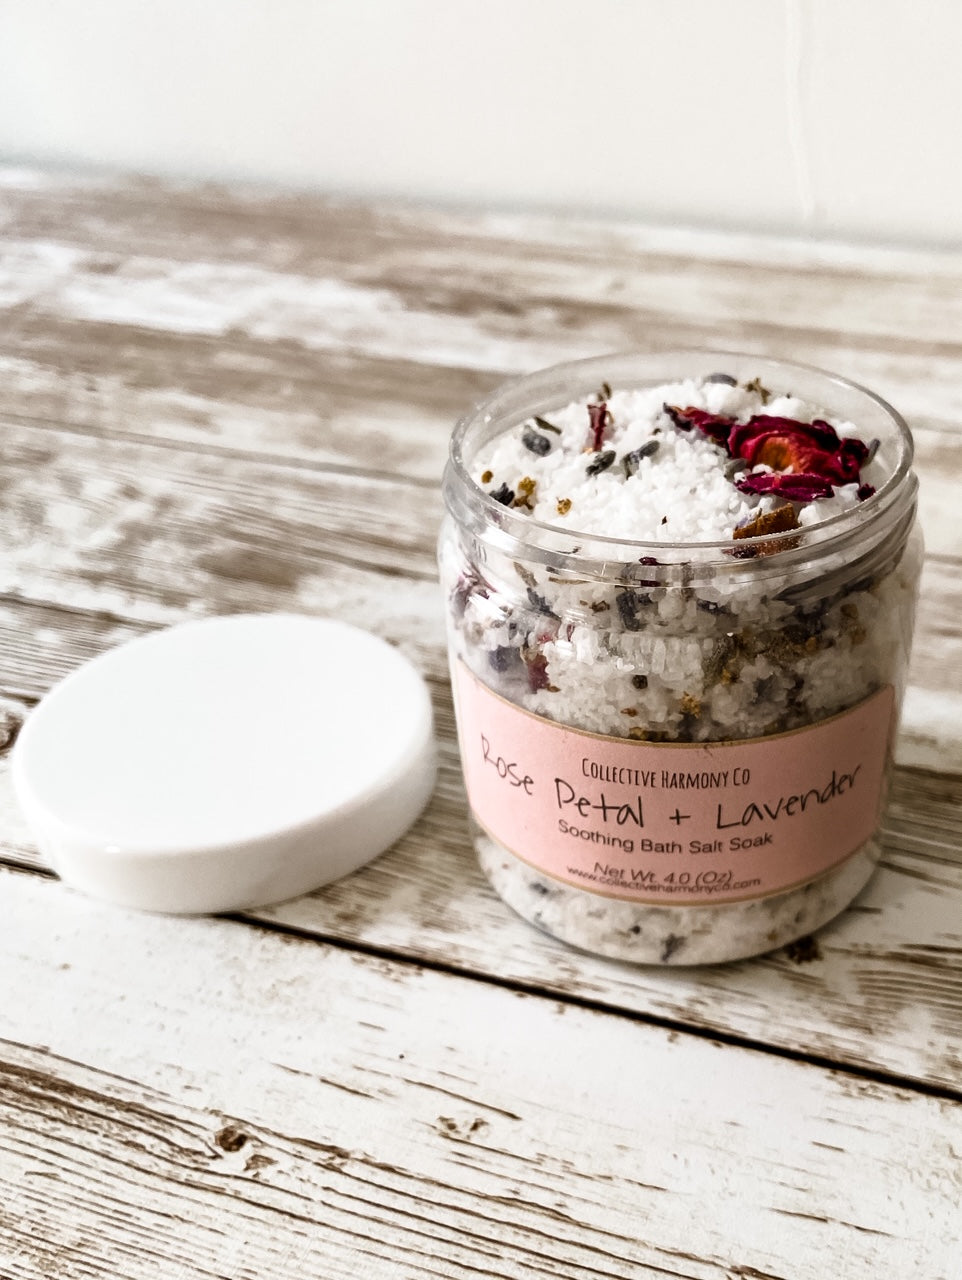 Rose Petal and Lavender Bath Salts - Salt and Branch